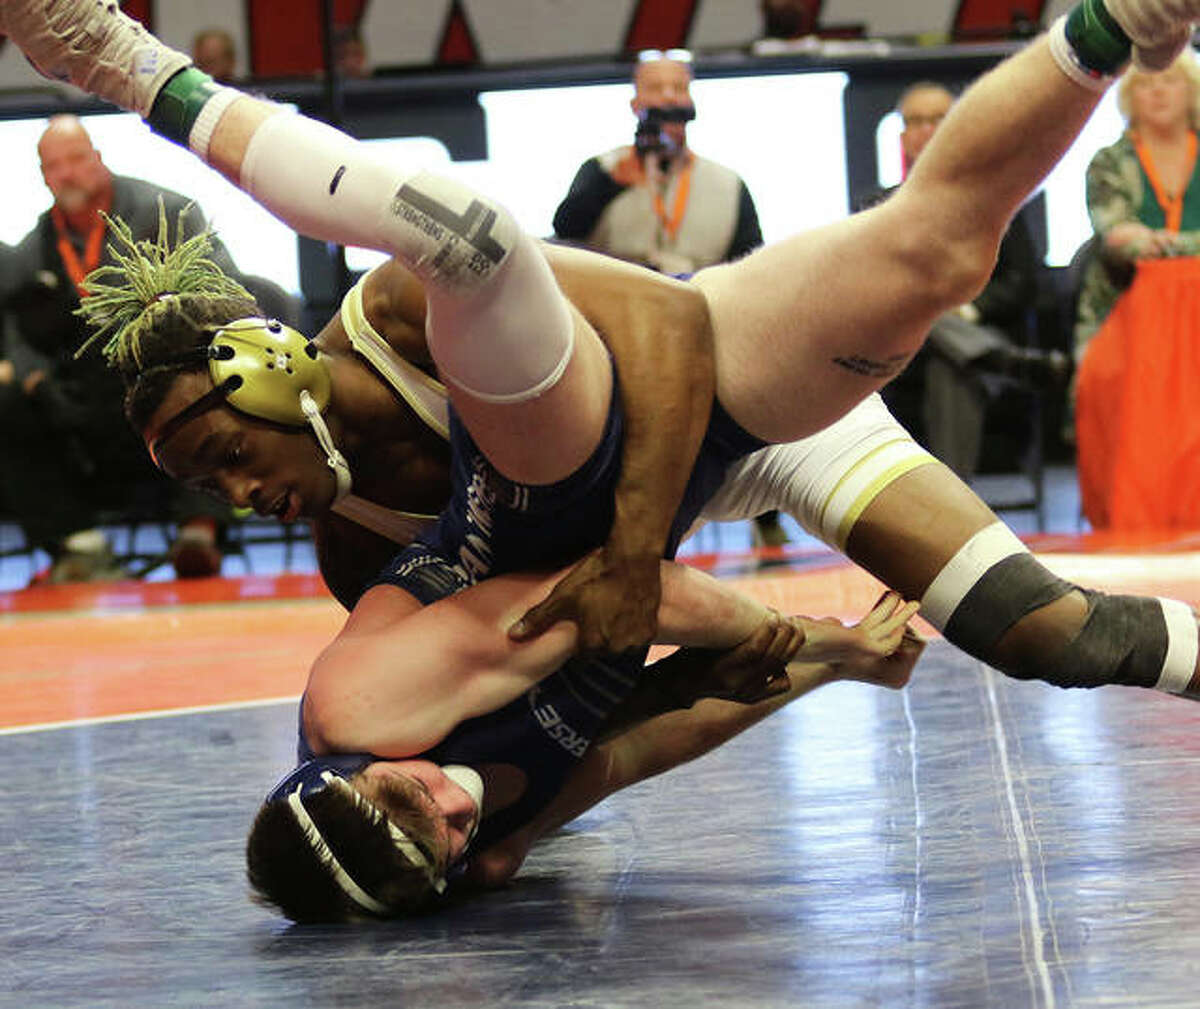 Jersey's Zeke Waltz (bottom) avoids going to his back against Thornton Fractional North's Bilal Bailey during their 160-pound championship match in the Class 2A wrestling state tournament at State Farm Center in Champaign.